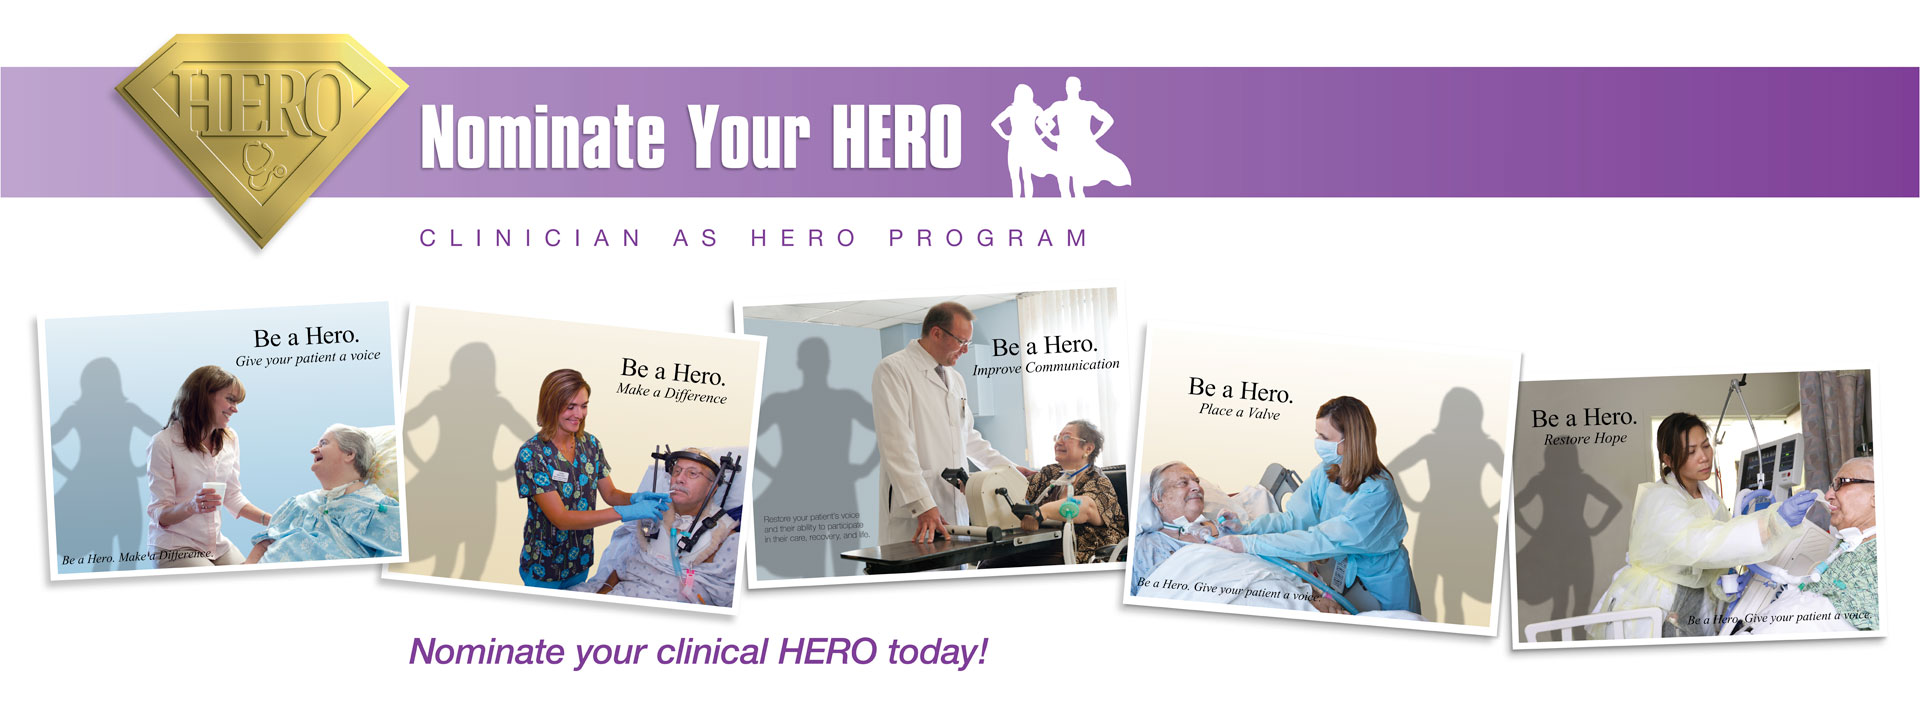 Clinical Hero Program